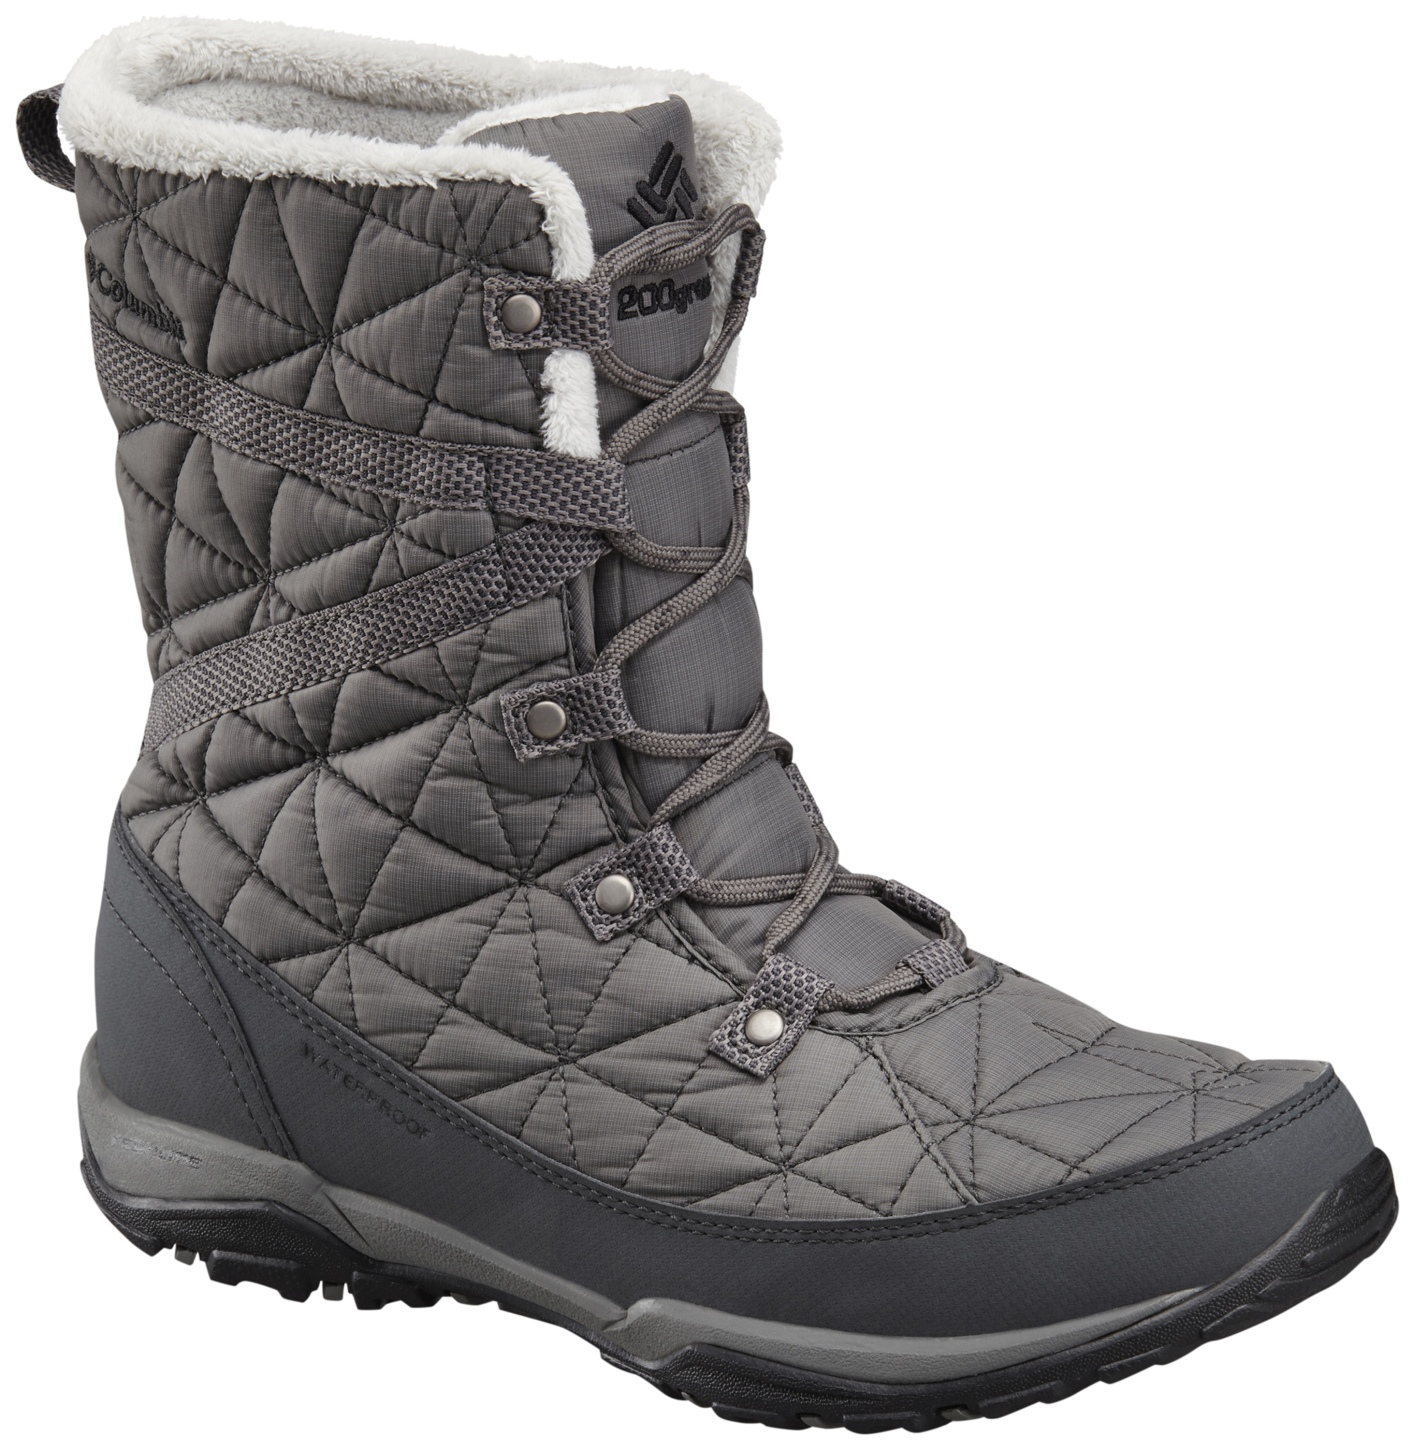 Columbia Women's Loveland Mid Omni-heat Waterproof Winter Boots Quarry, Black-30